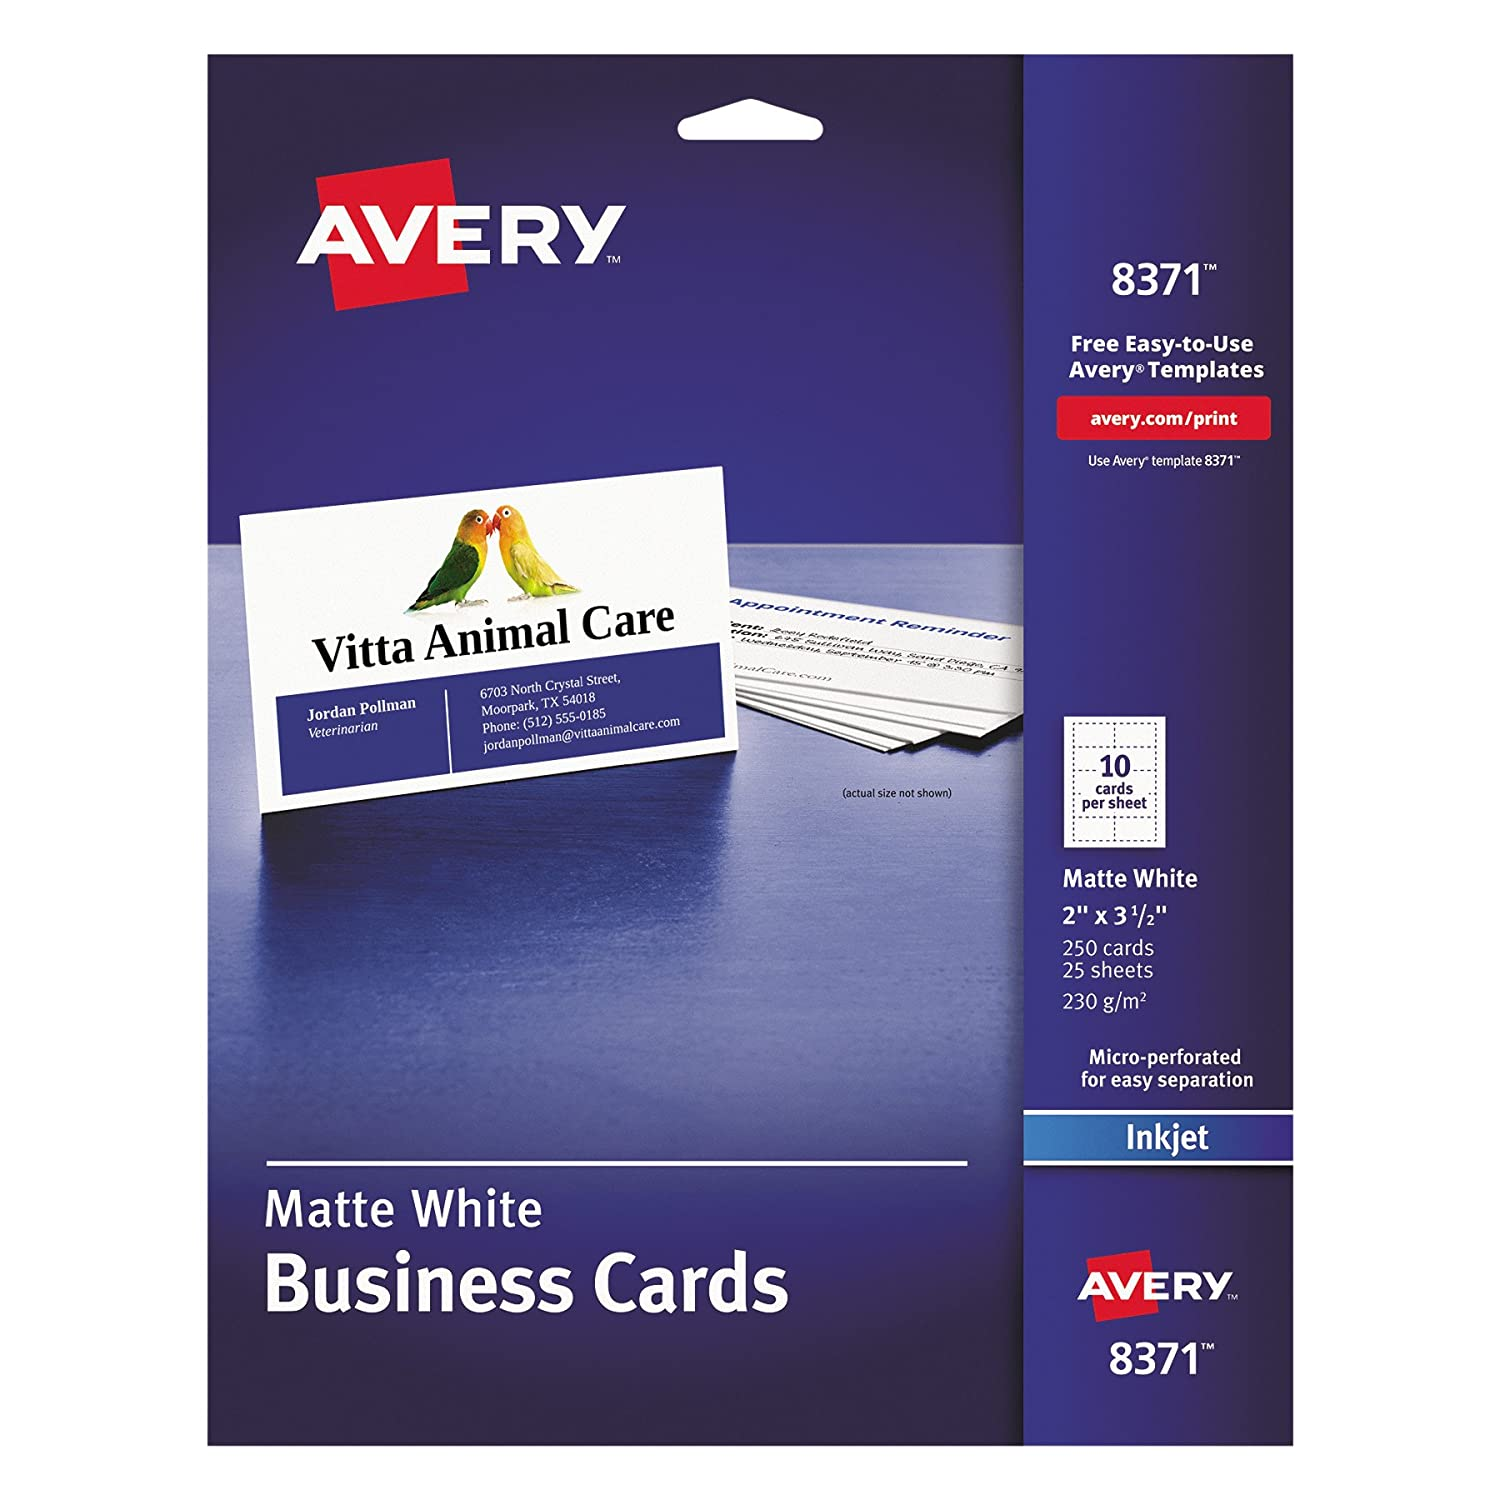 Amazon avery 8371 printable microperf business cards inkjet amazon avery 8371 printable microperf business cards inkjet 2 x 3 12 white matte pack of 250 business card stock office products flashek Gallery